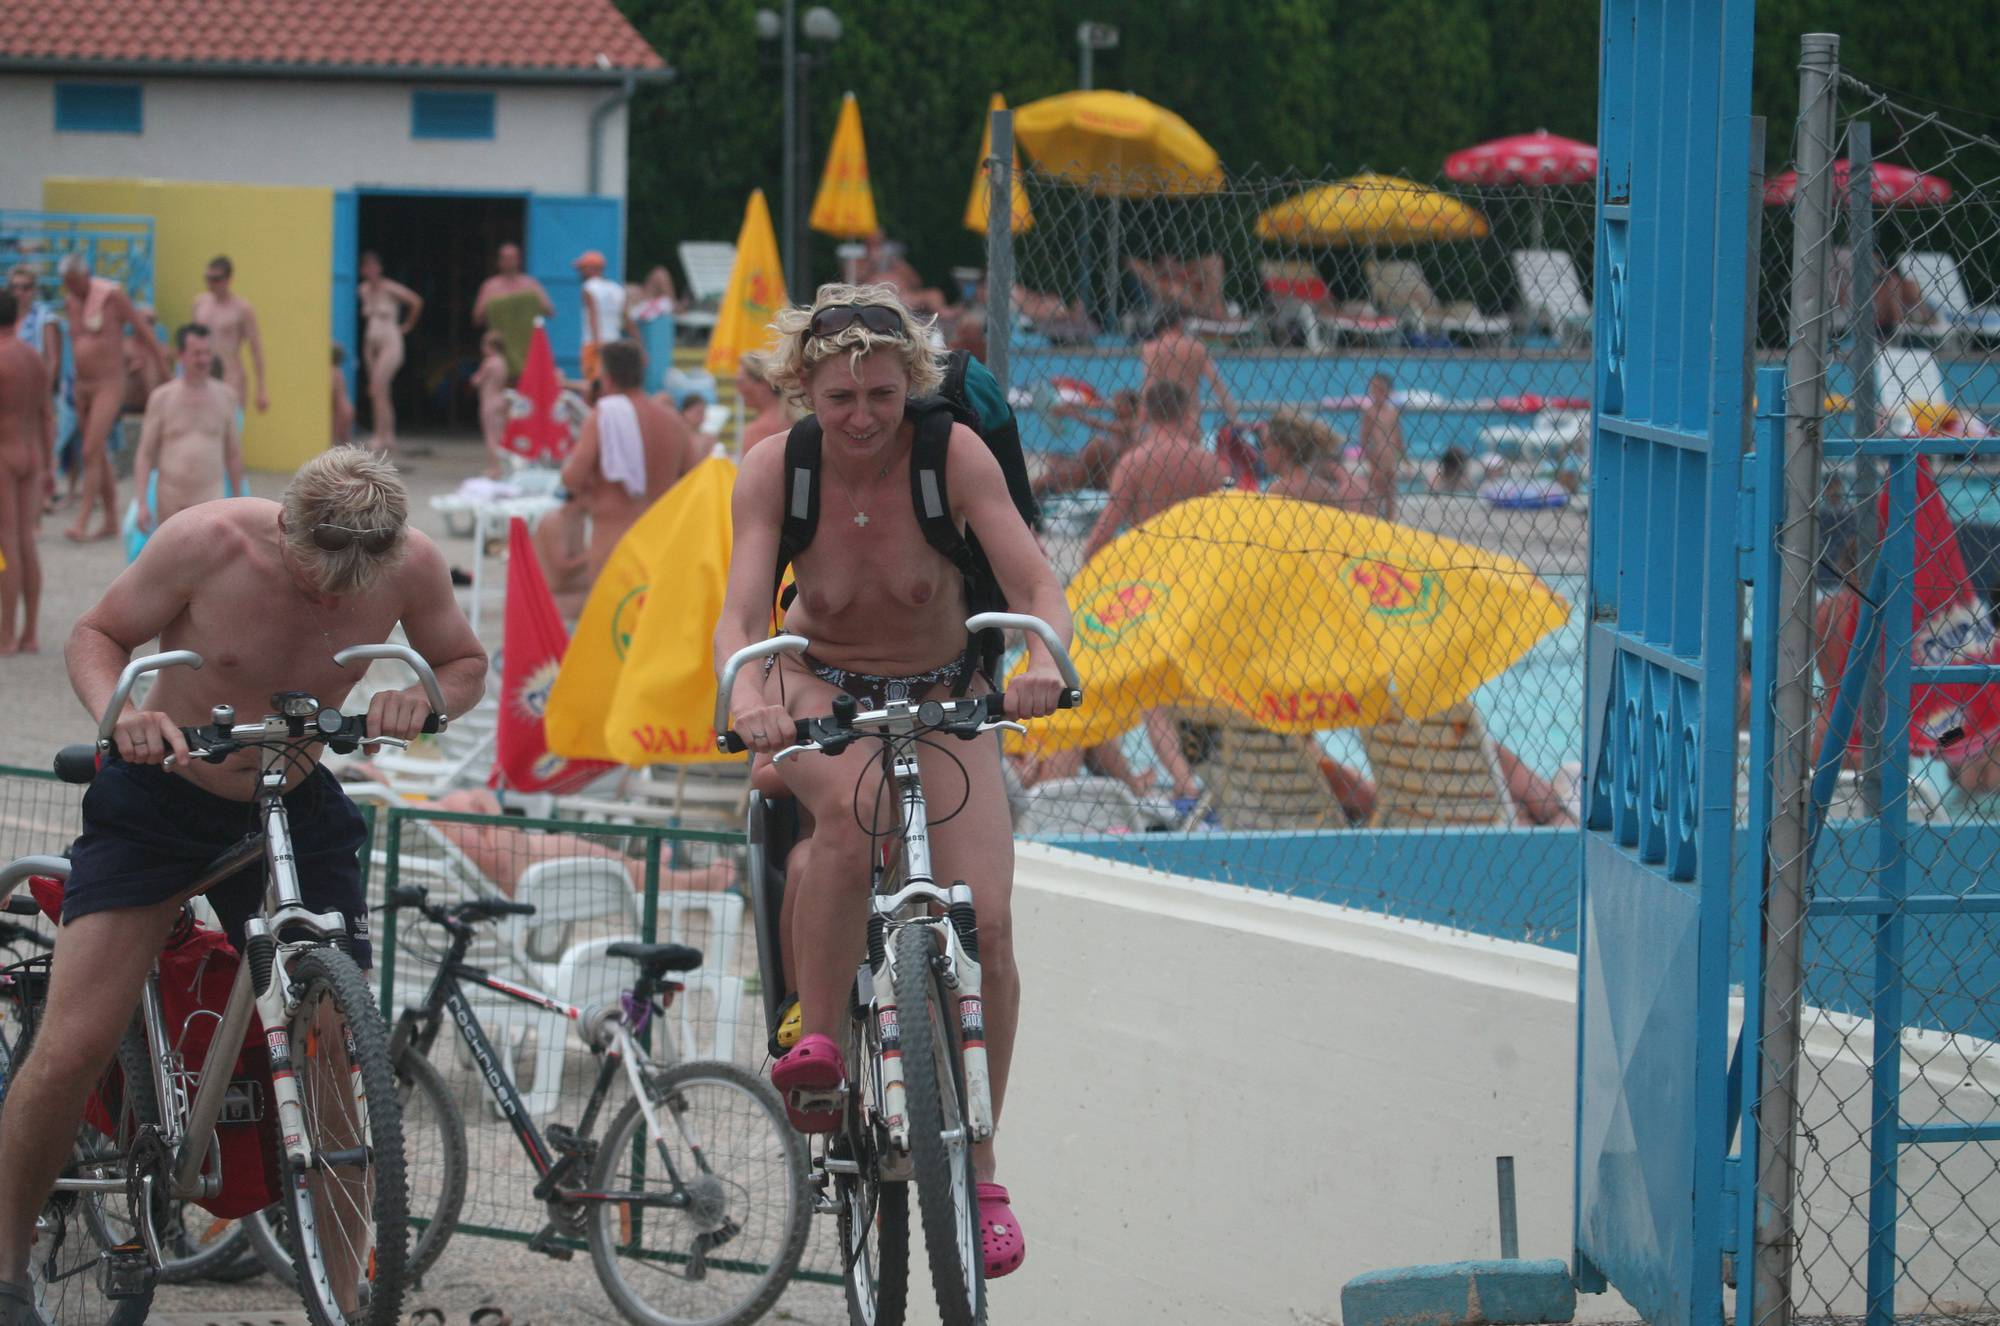 Nudist Pictures Naturist Pool Biking Exits - 2